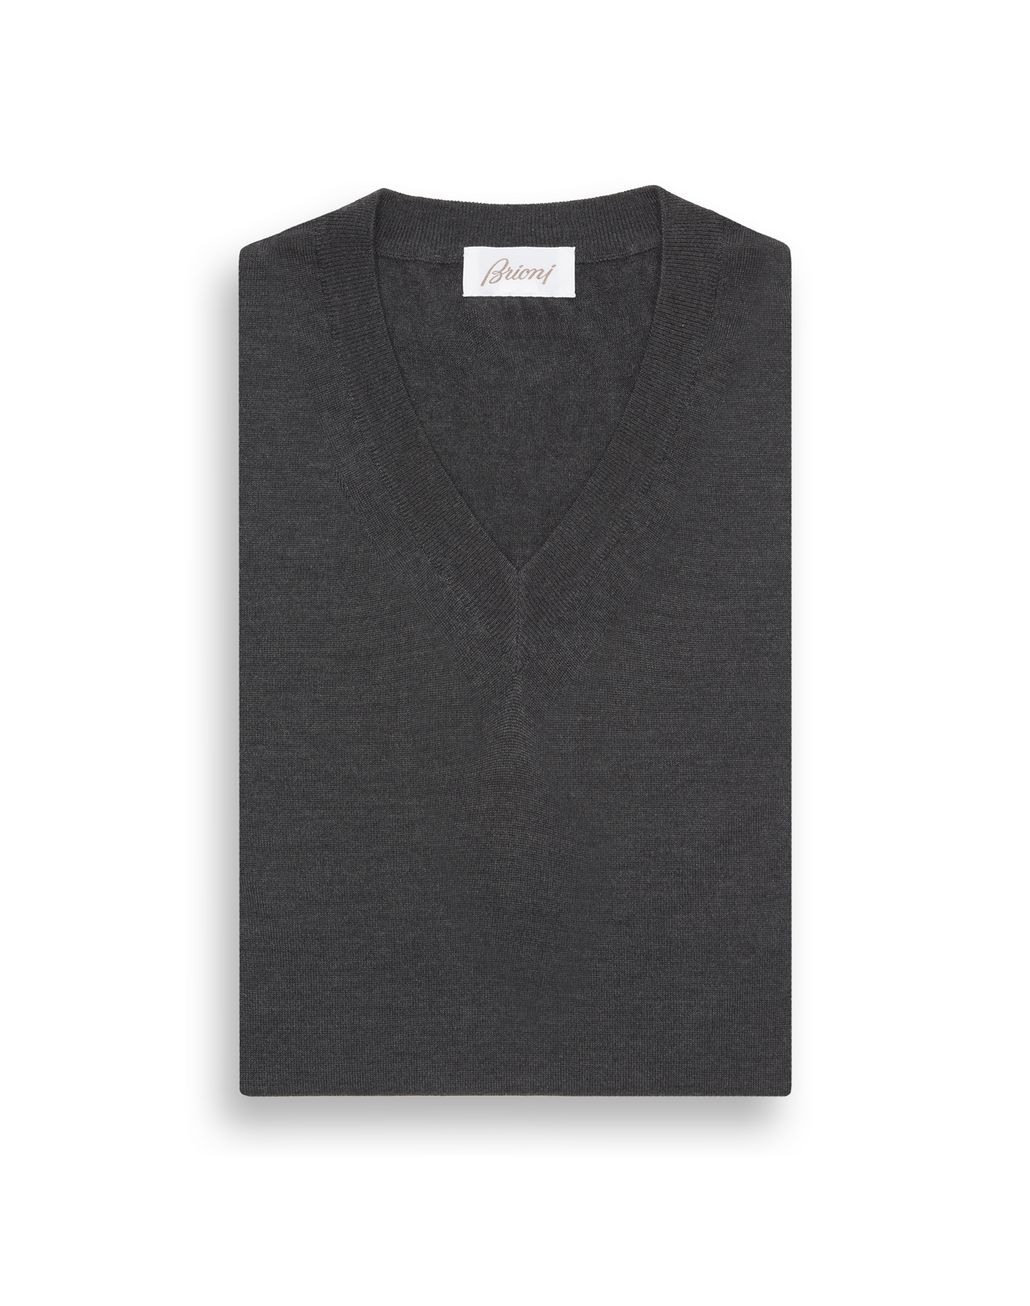 BRIONI 'Essential' Grey V-Neck Sweater Knitwear [*** pickupInStoreShippingNotGuaranteed_info ***] e